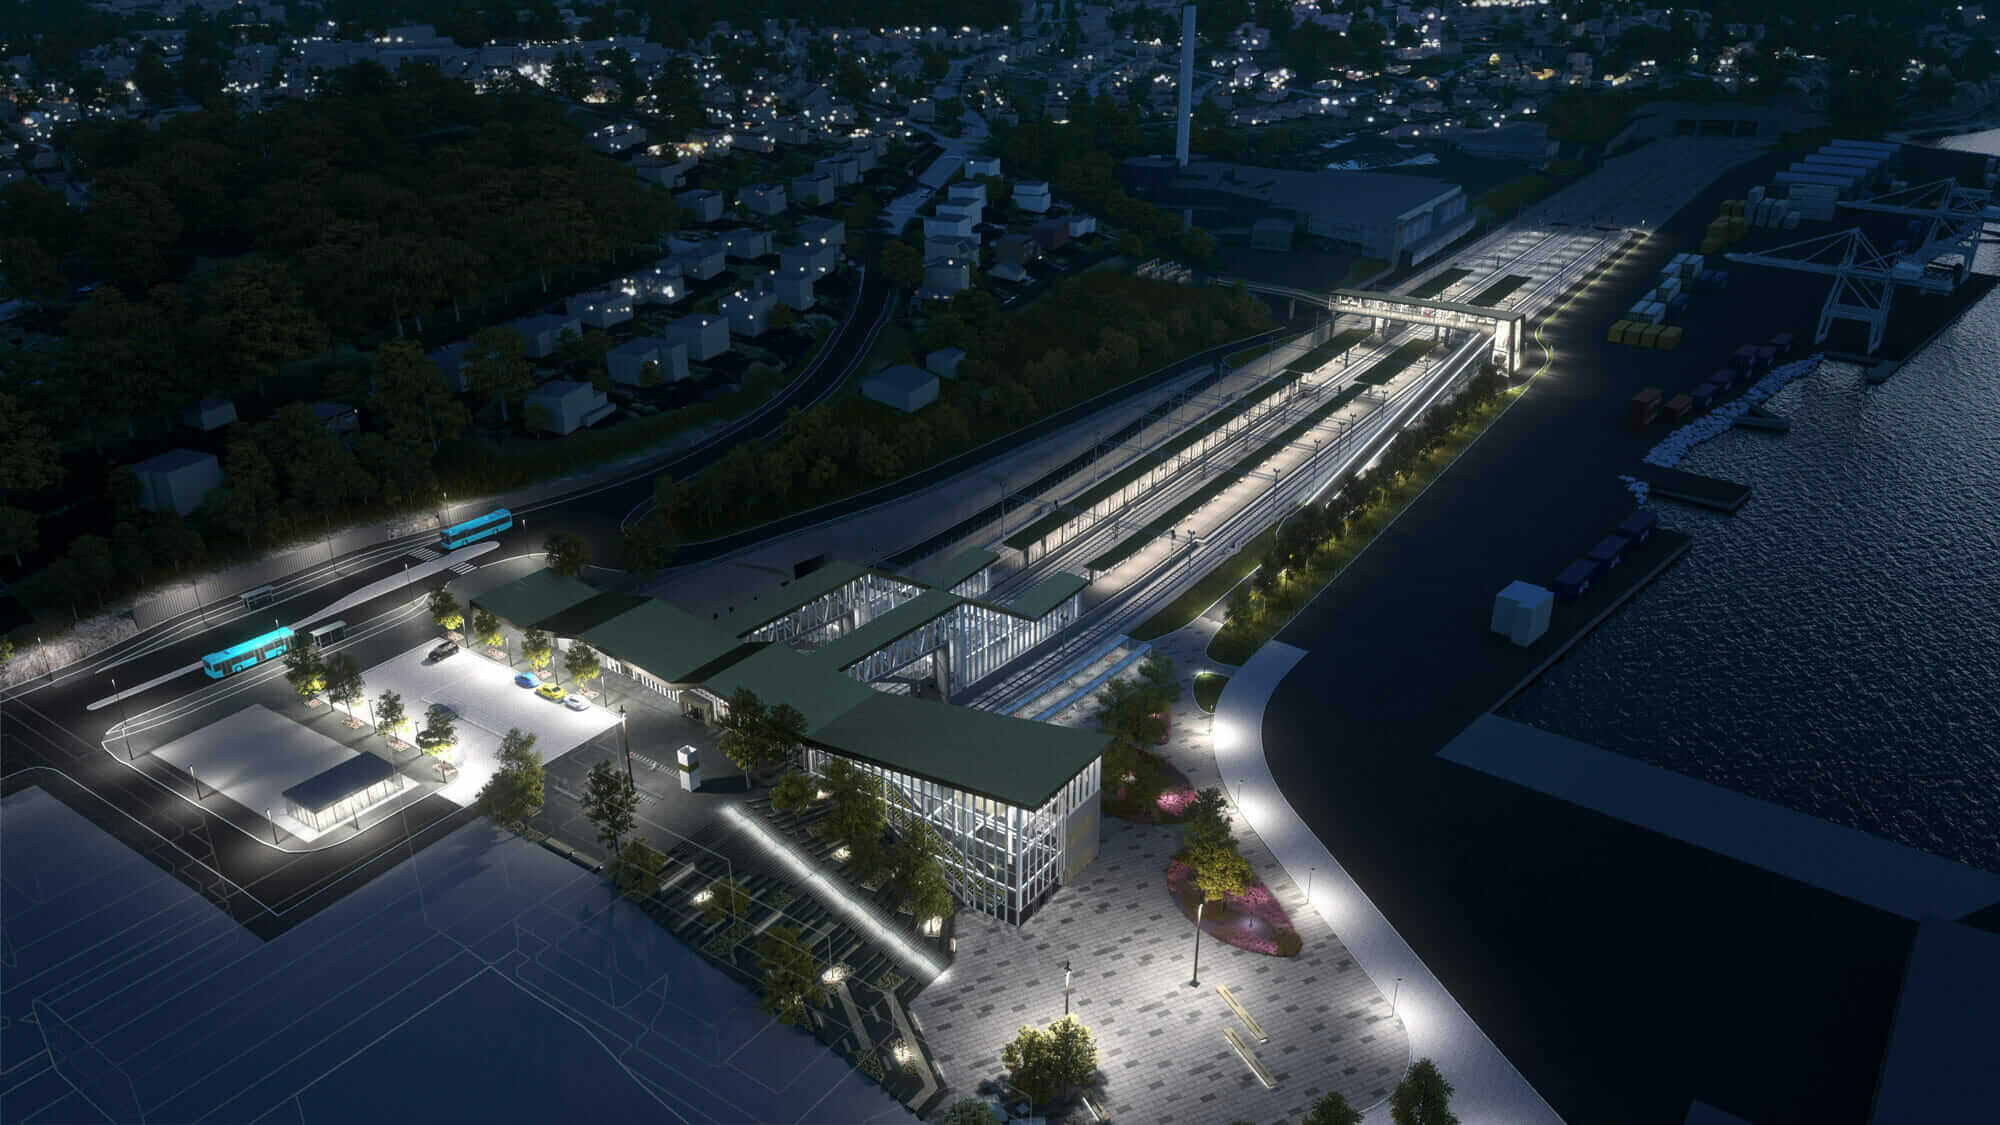 immersive design complex rail project rendering at night